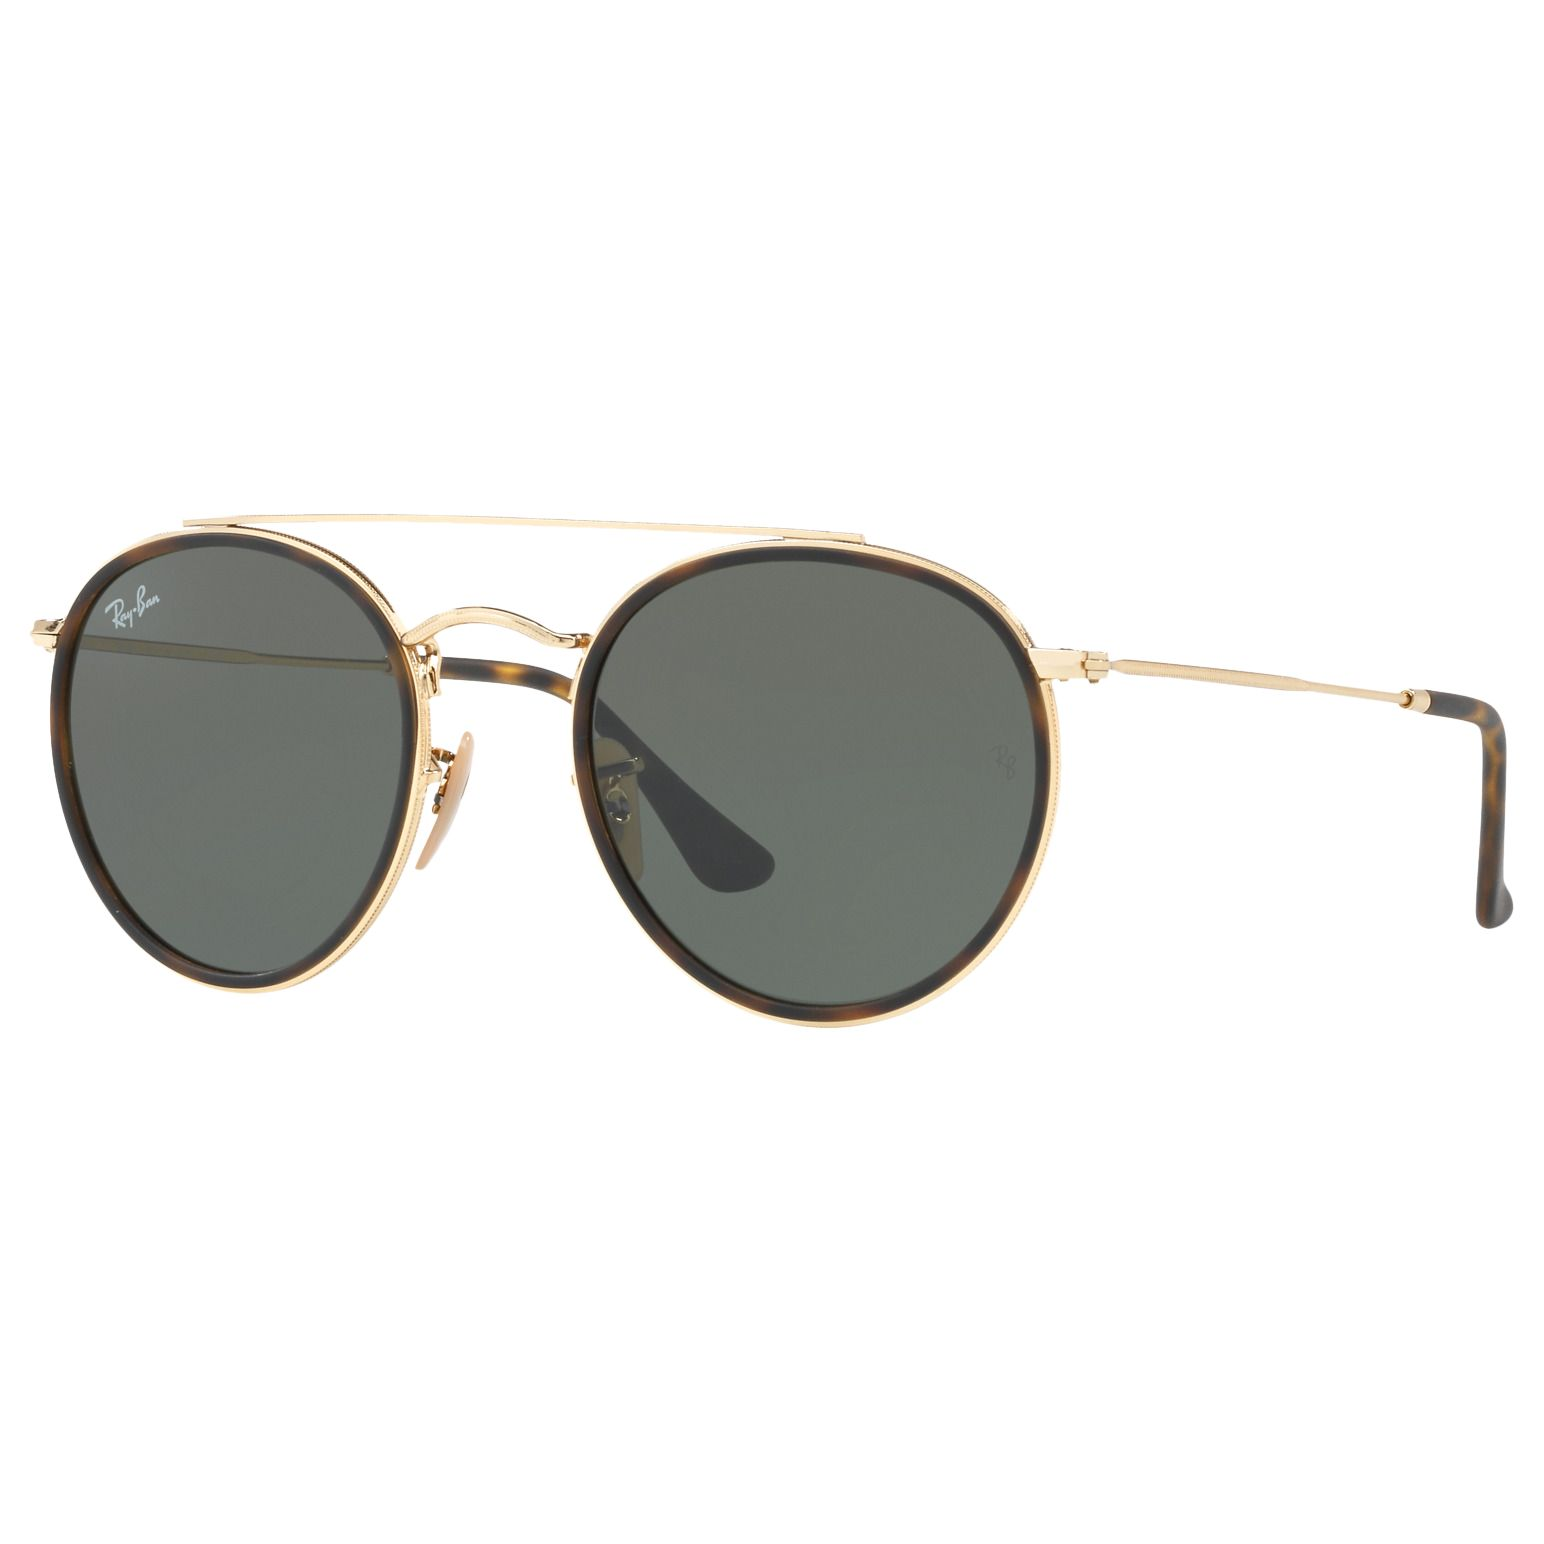 Ray-ban Ray-Ban RB3647N Unisex Double Bridge Oval Sunglasses